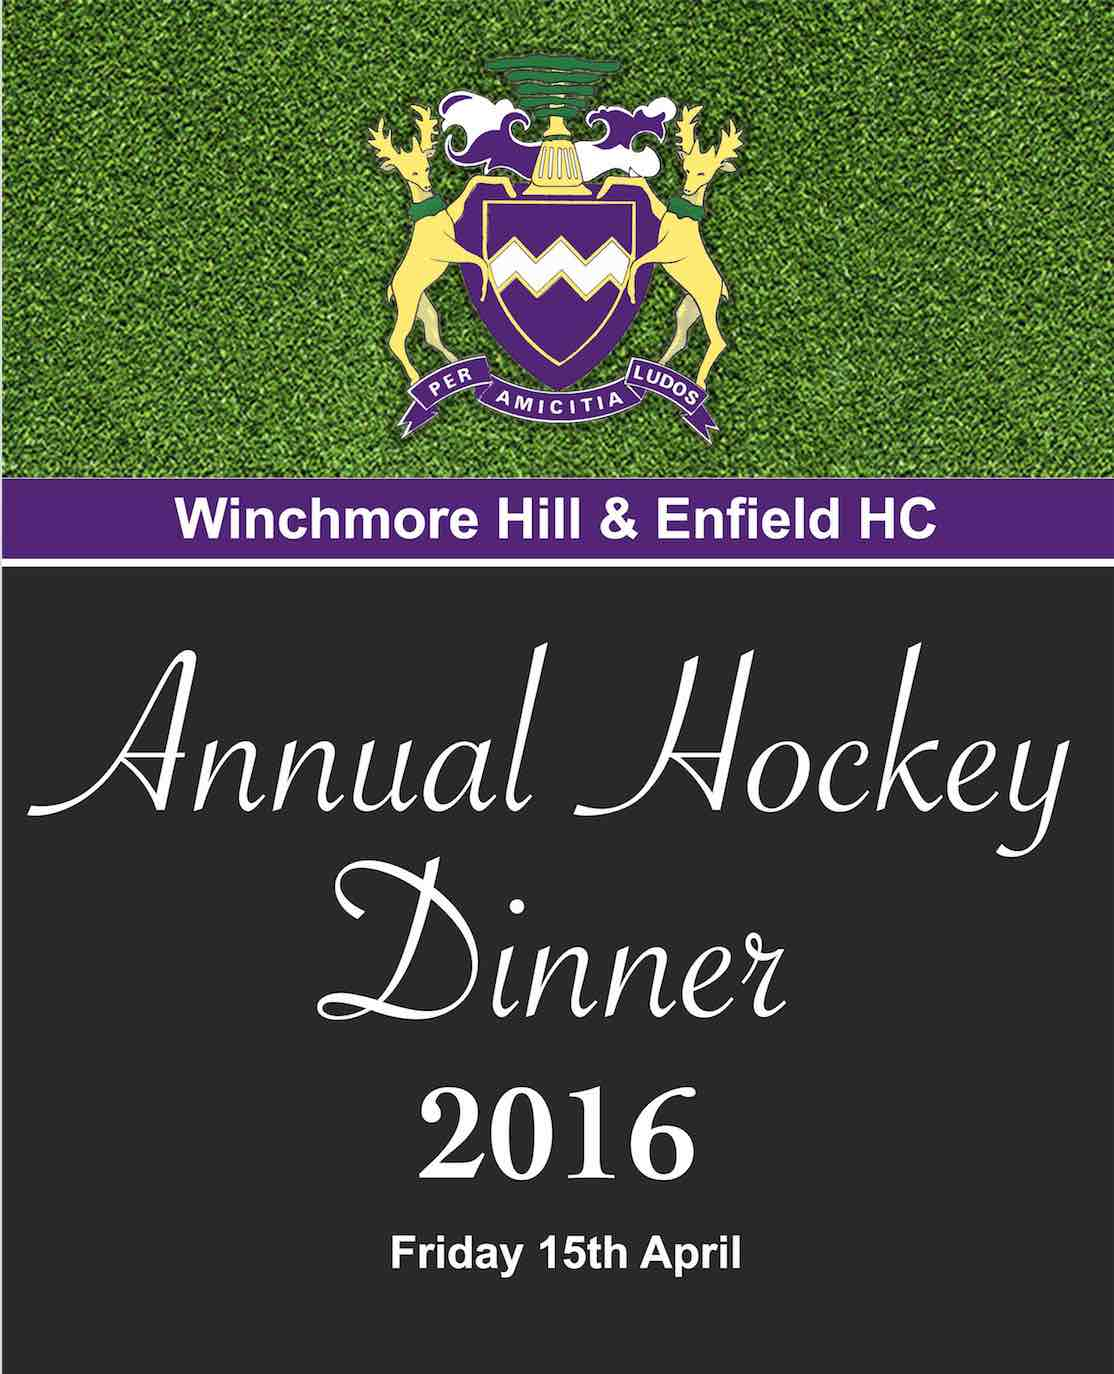 Annual hockey dinner screen shot